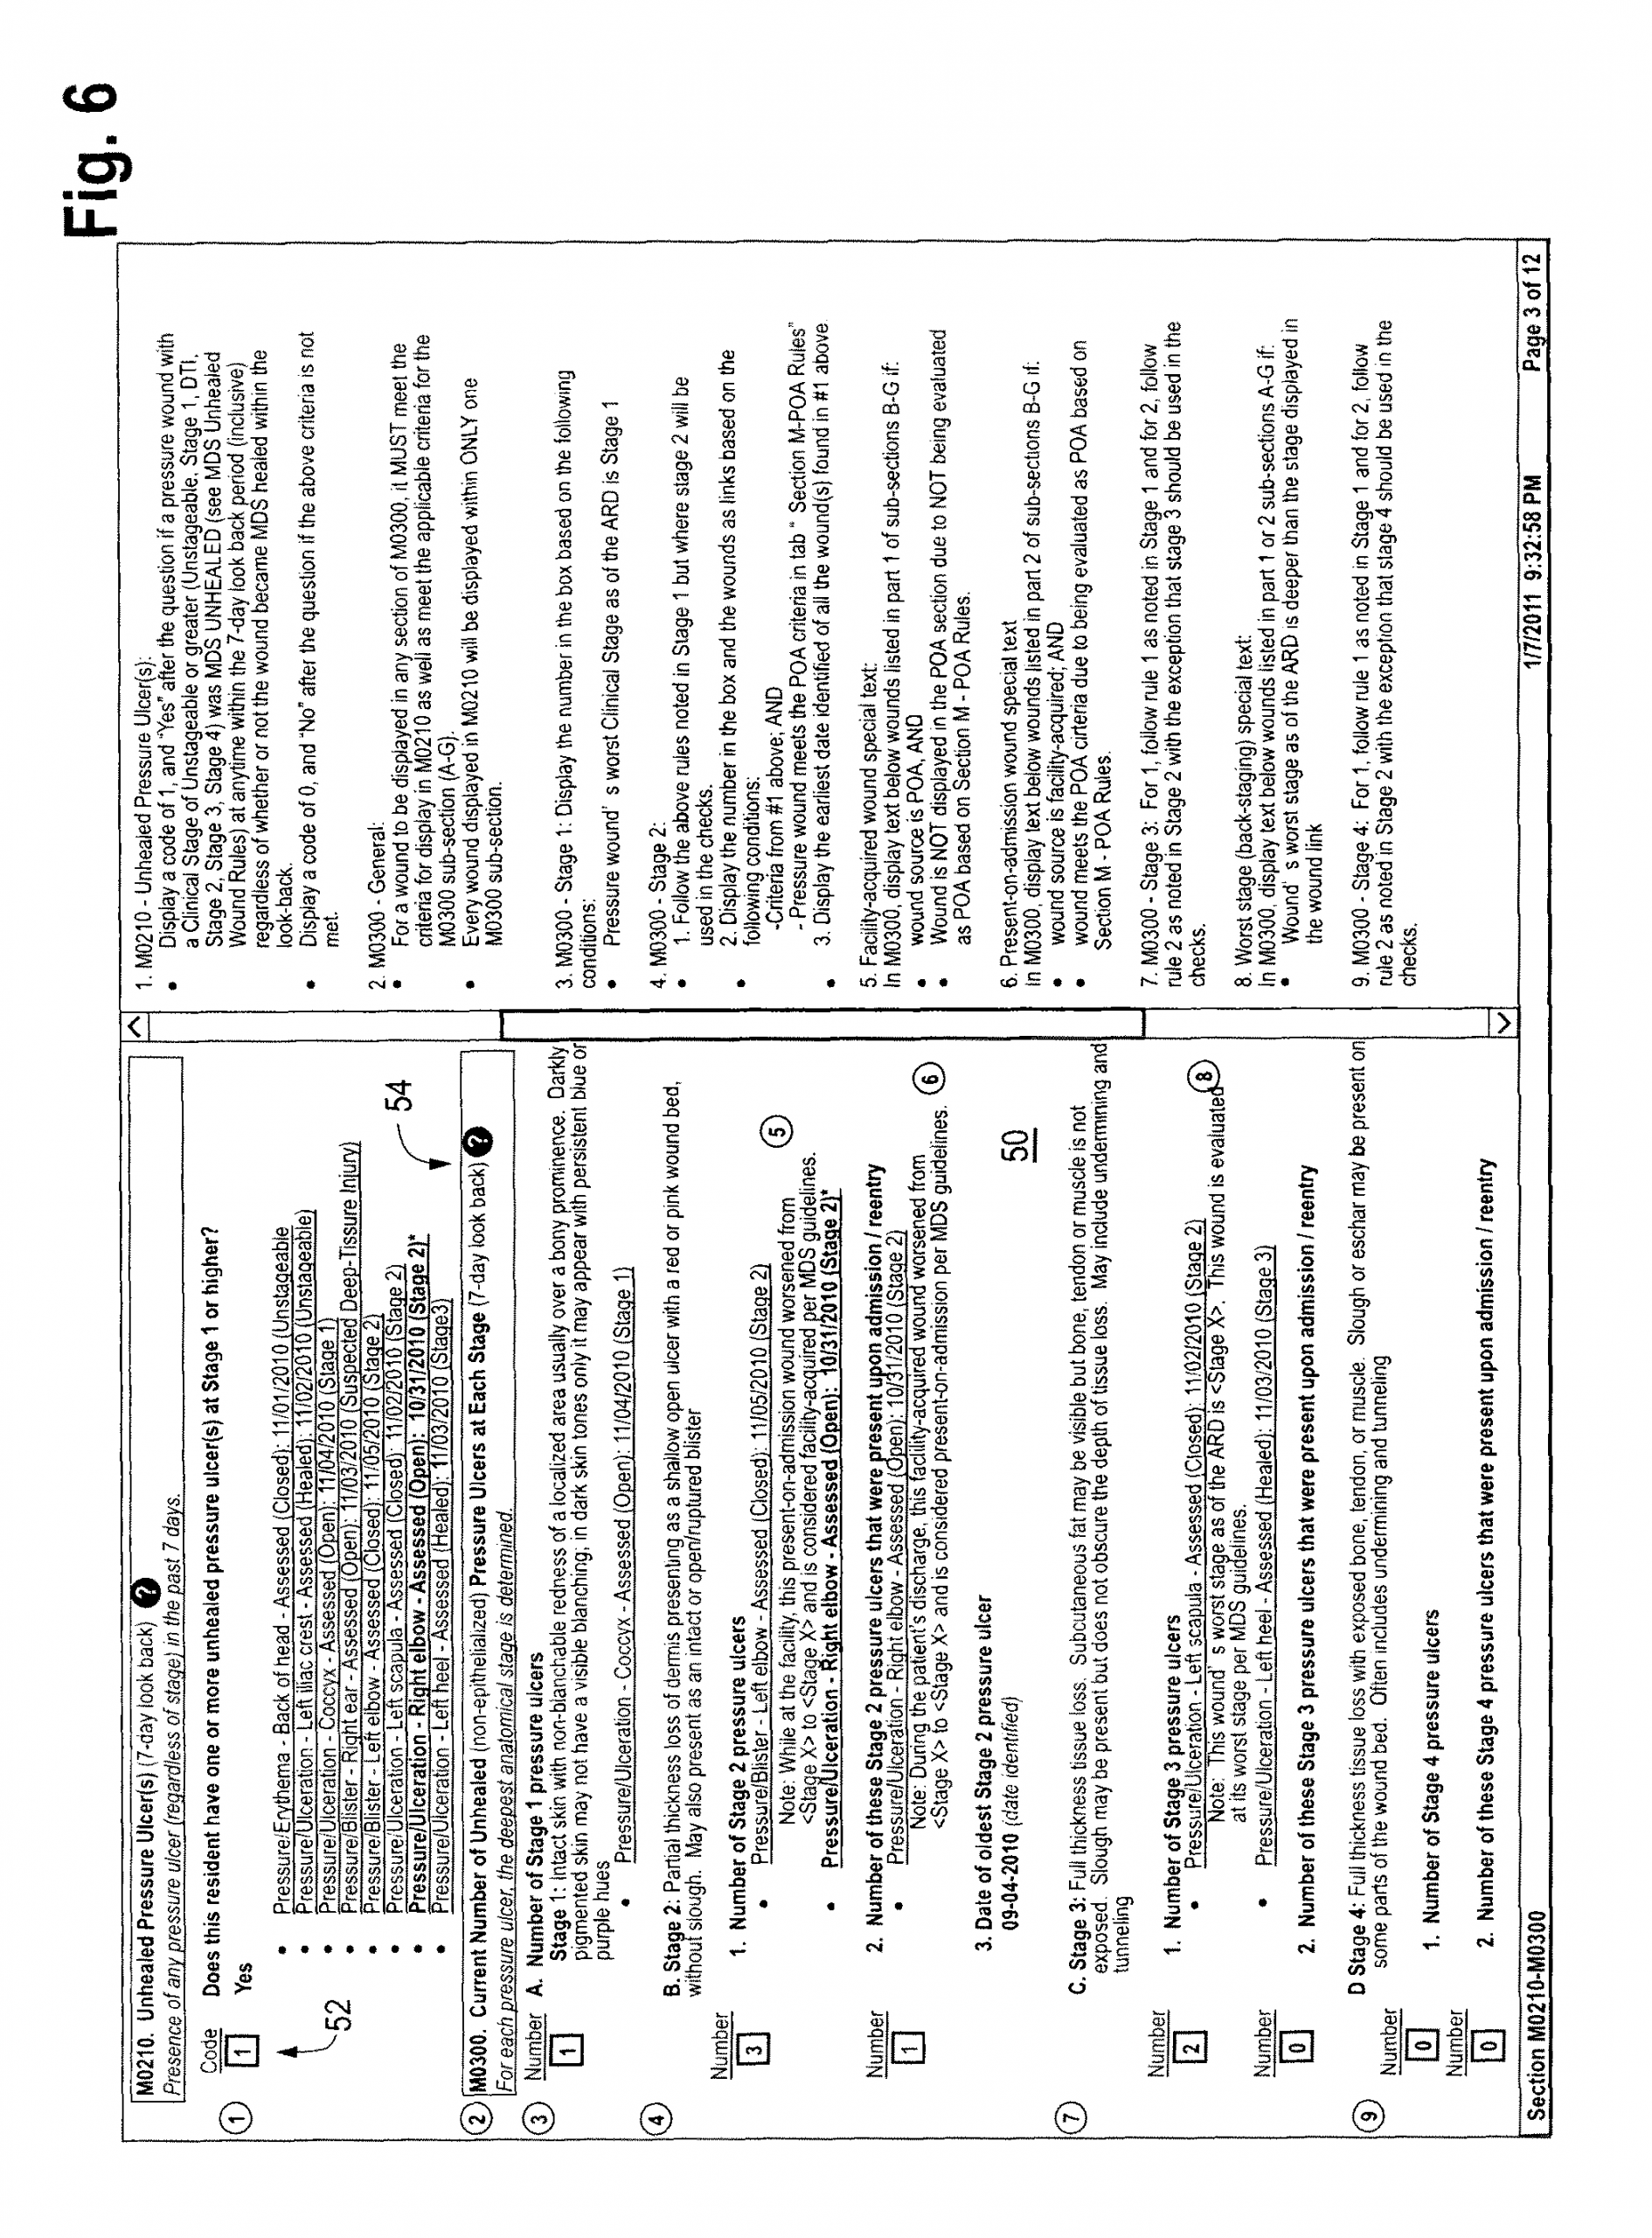 Patent Us20130085777 - Method And System For Wound Prevention, Management And Treatment - Google